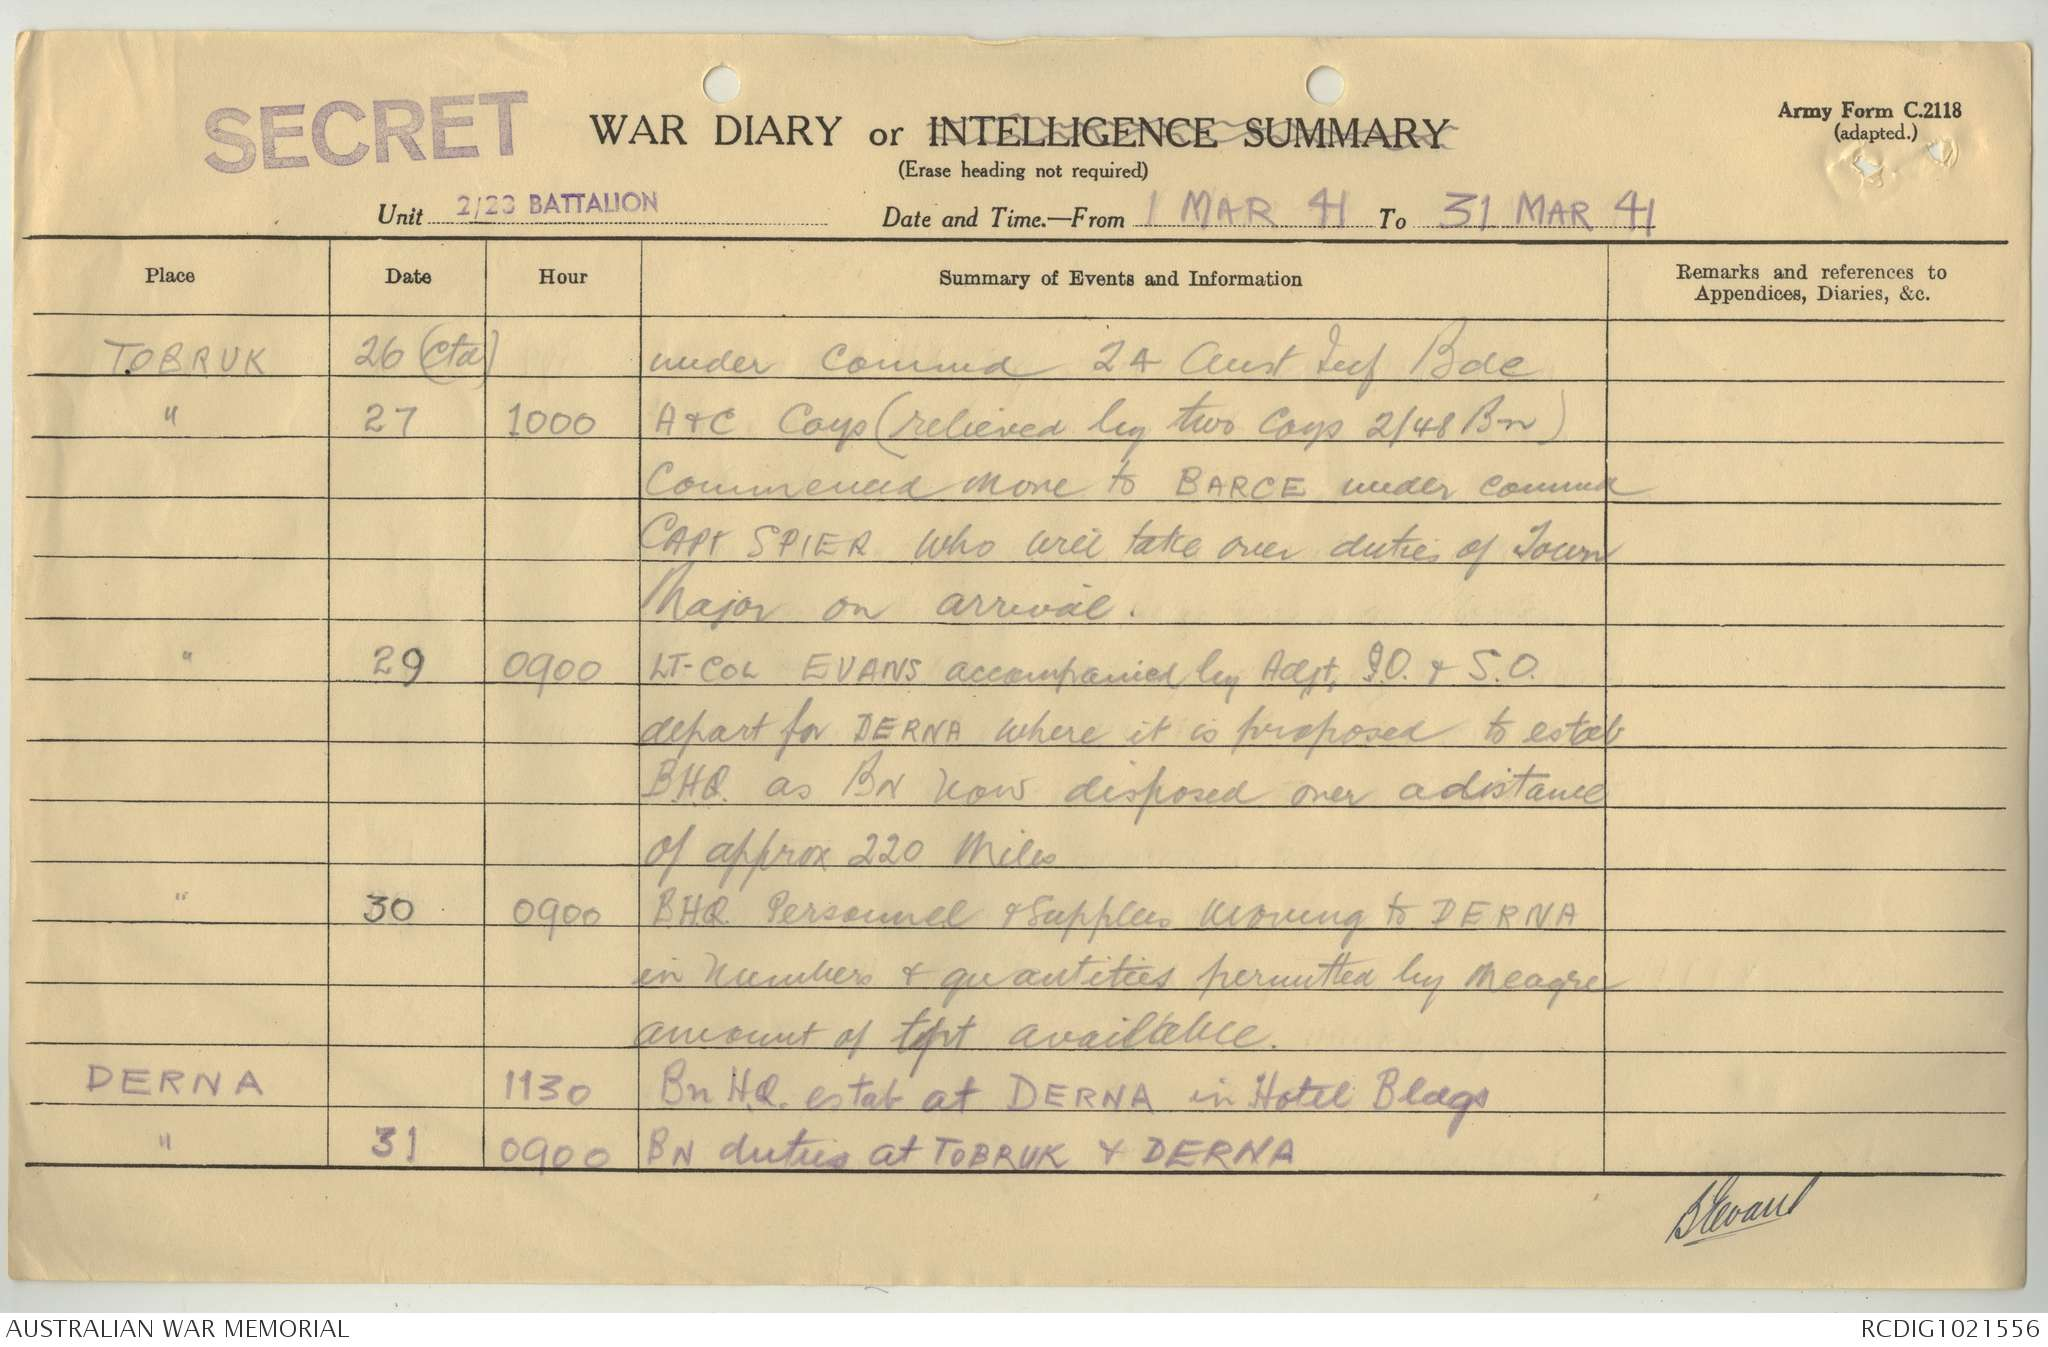 a summary of the events of d day Outline of world war ii world war ii summary timeline invasion of poland d-day (june 6, 1944.